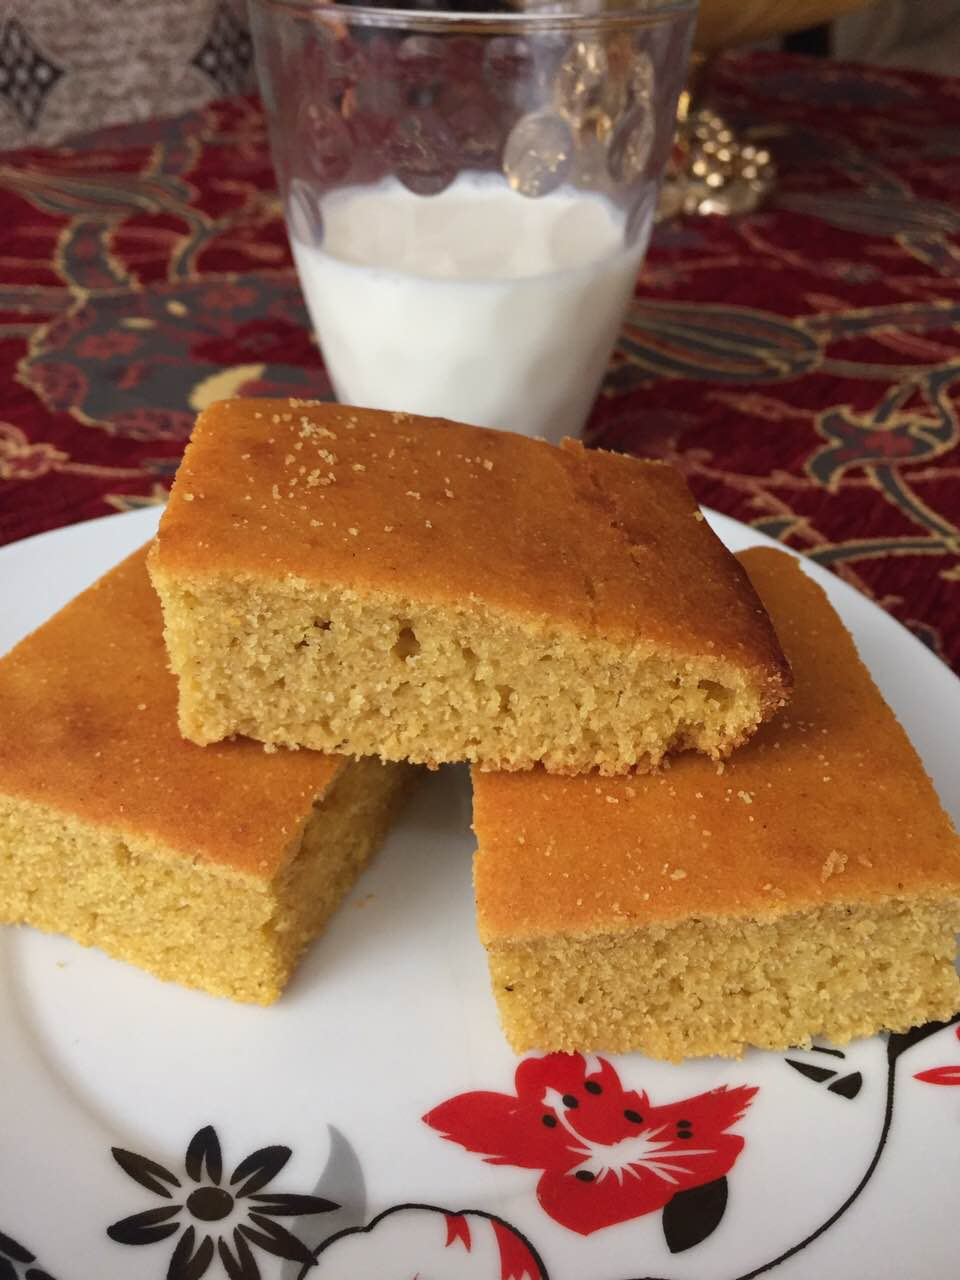 Sodanik- a Traditional Corn Flour Cake